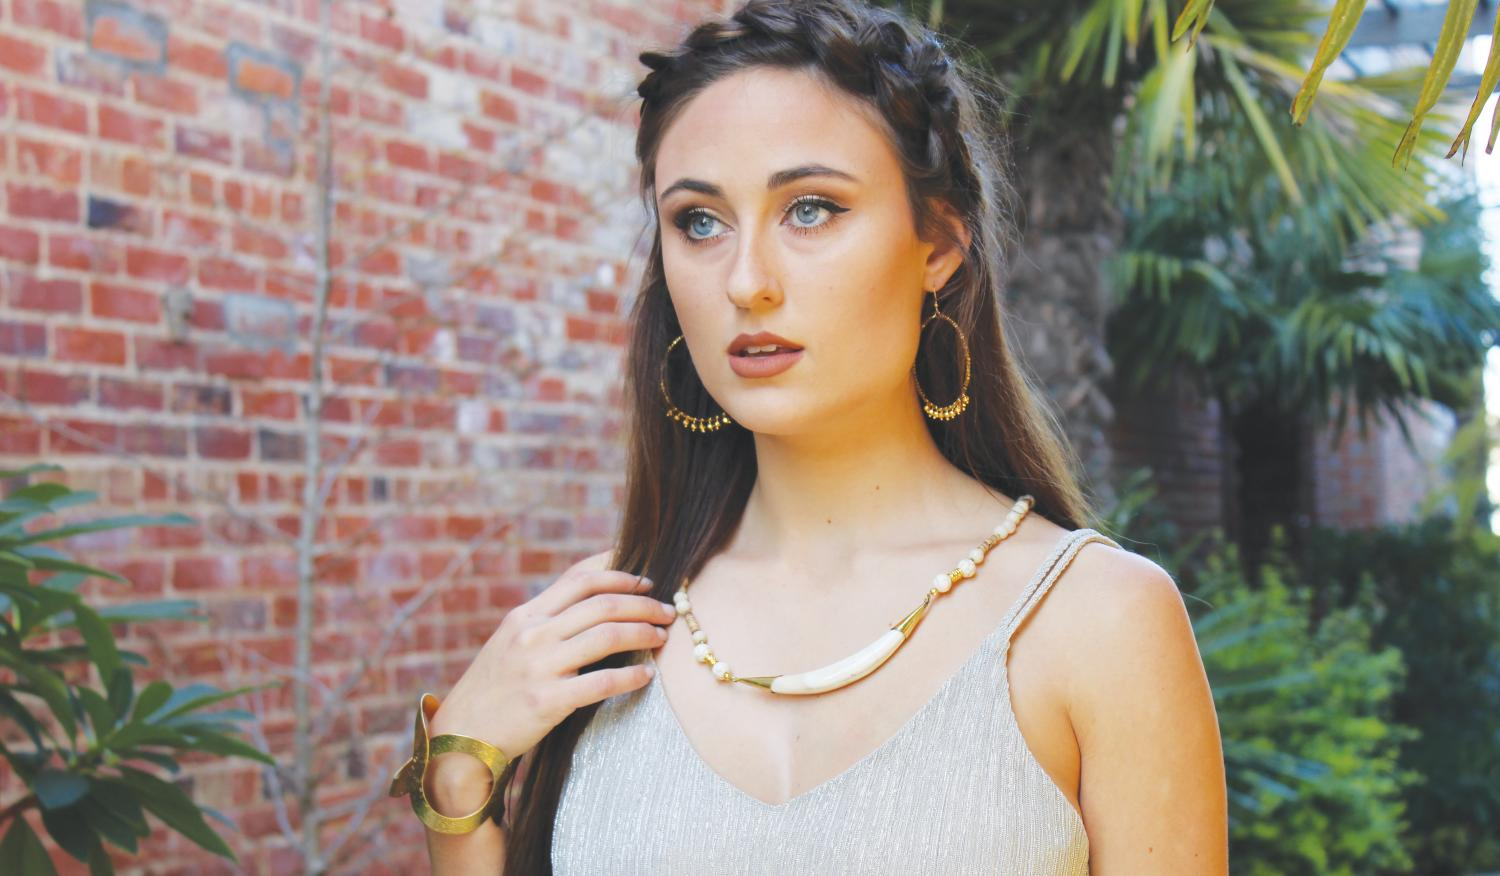 FMU senior Shaina Bazen models for a local business and hopes to continue working in the fashion industry after college